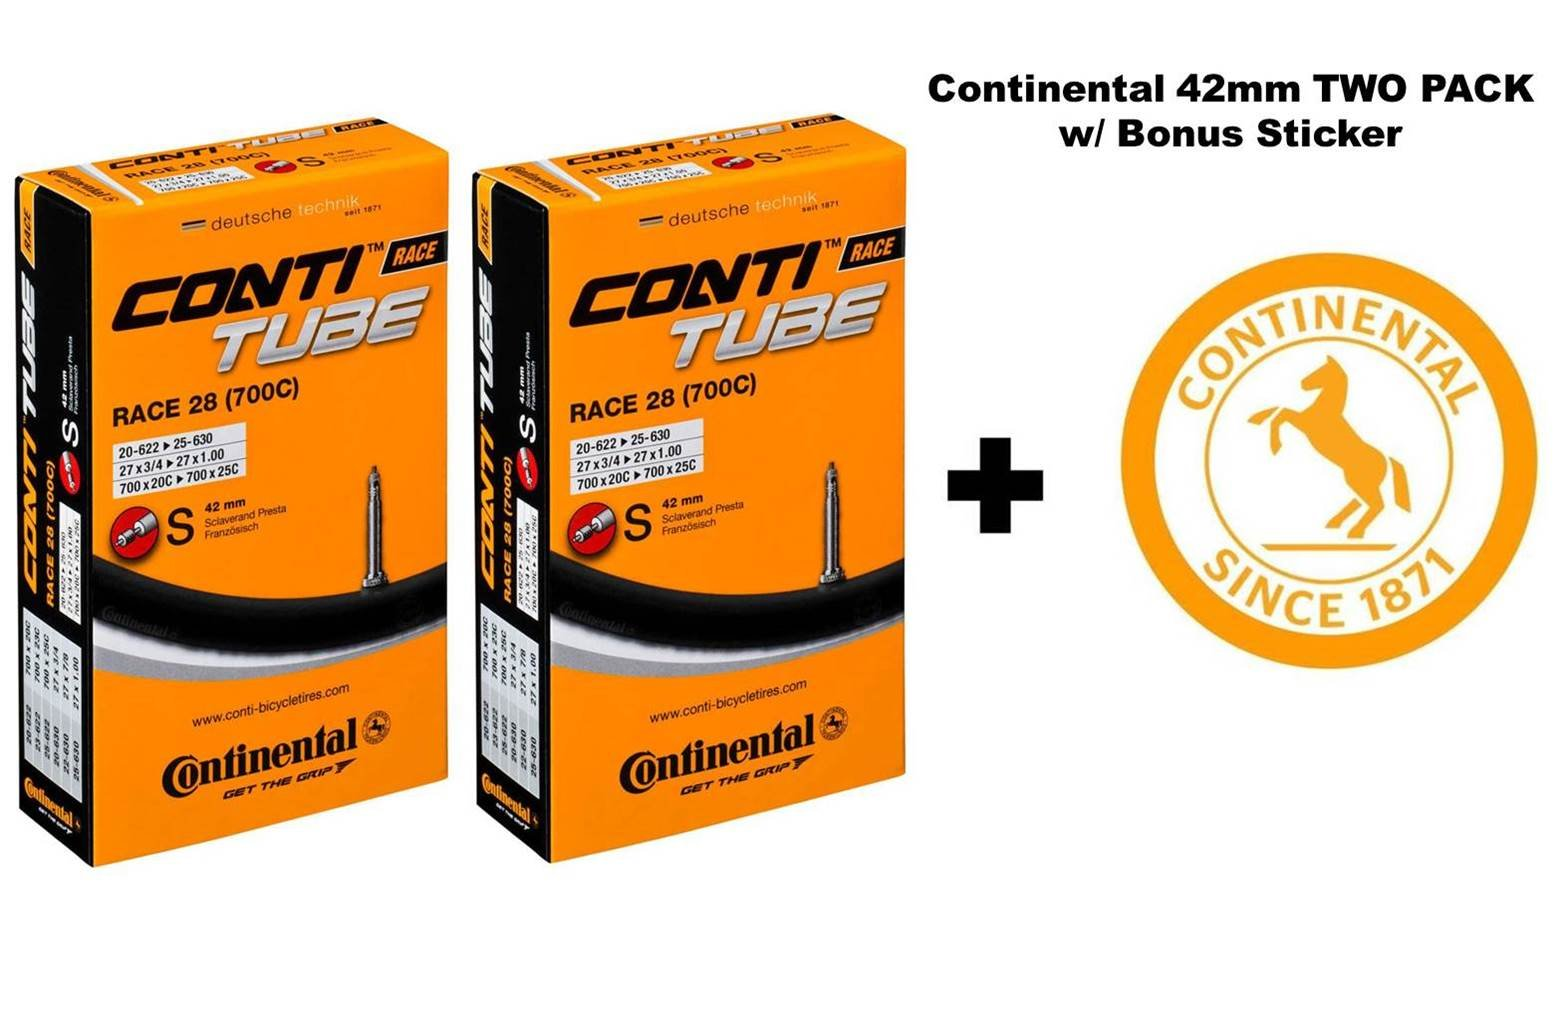 Continental Race 28'' 700x20-25c Bicycle Inner Tubes - 42mm Long Presta Valve - Two Pack w/Bonus Conti Sticker